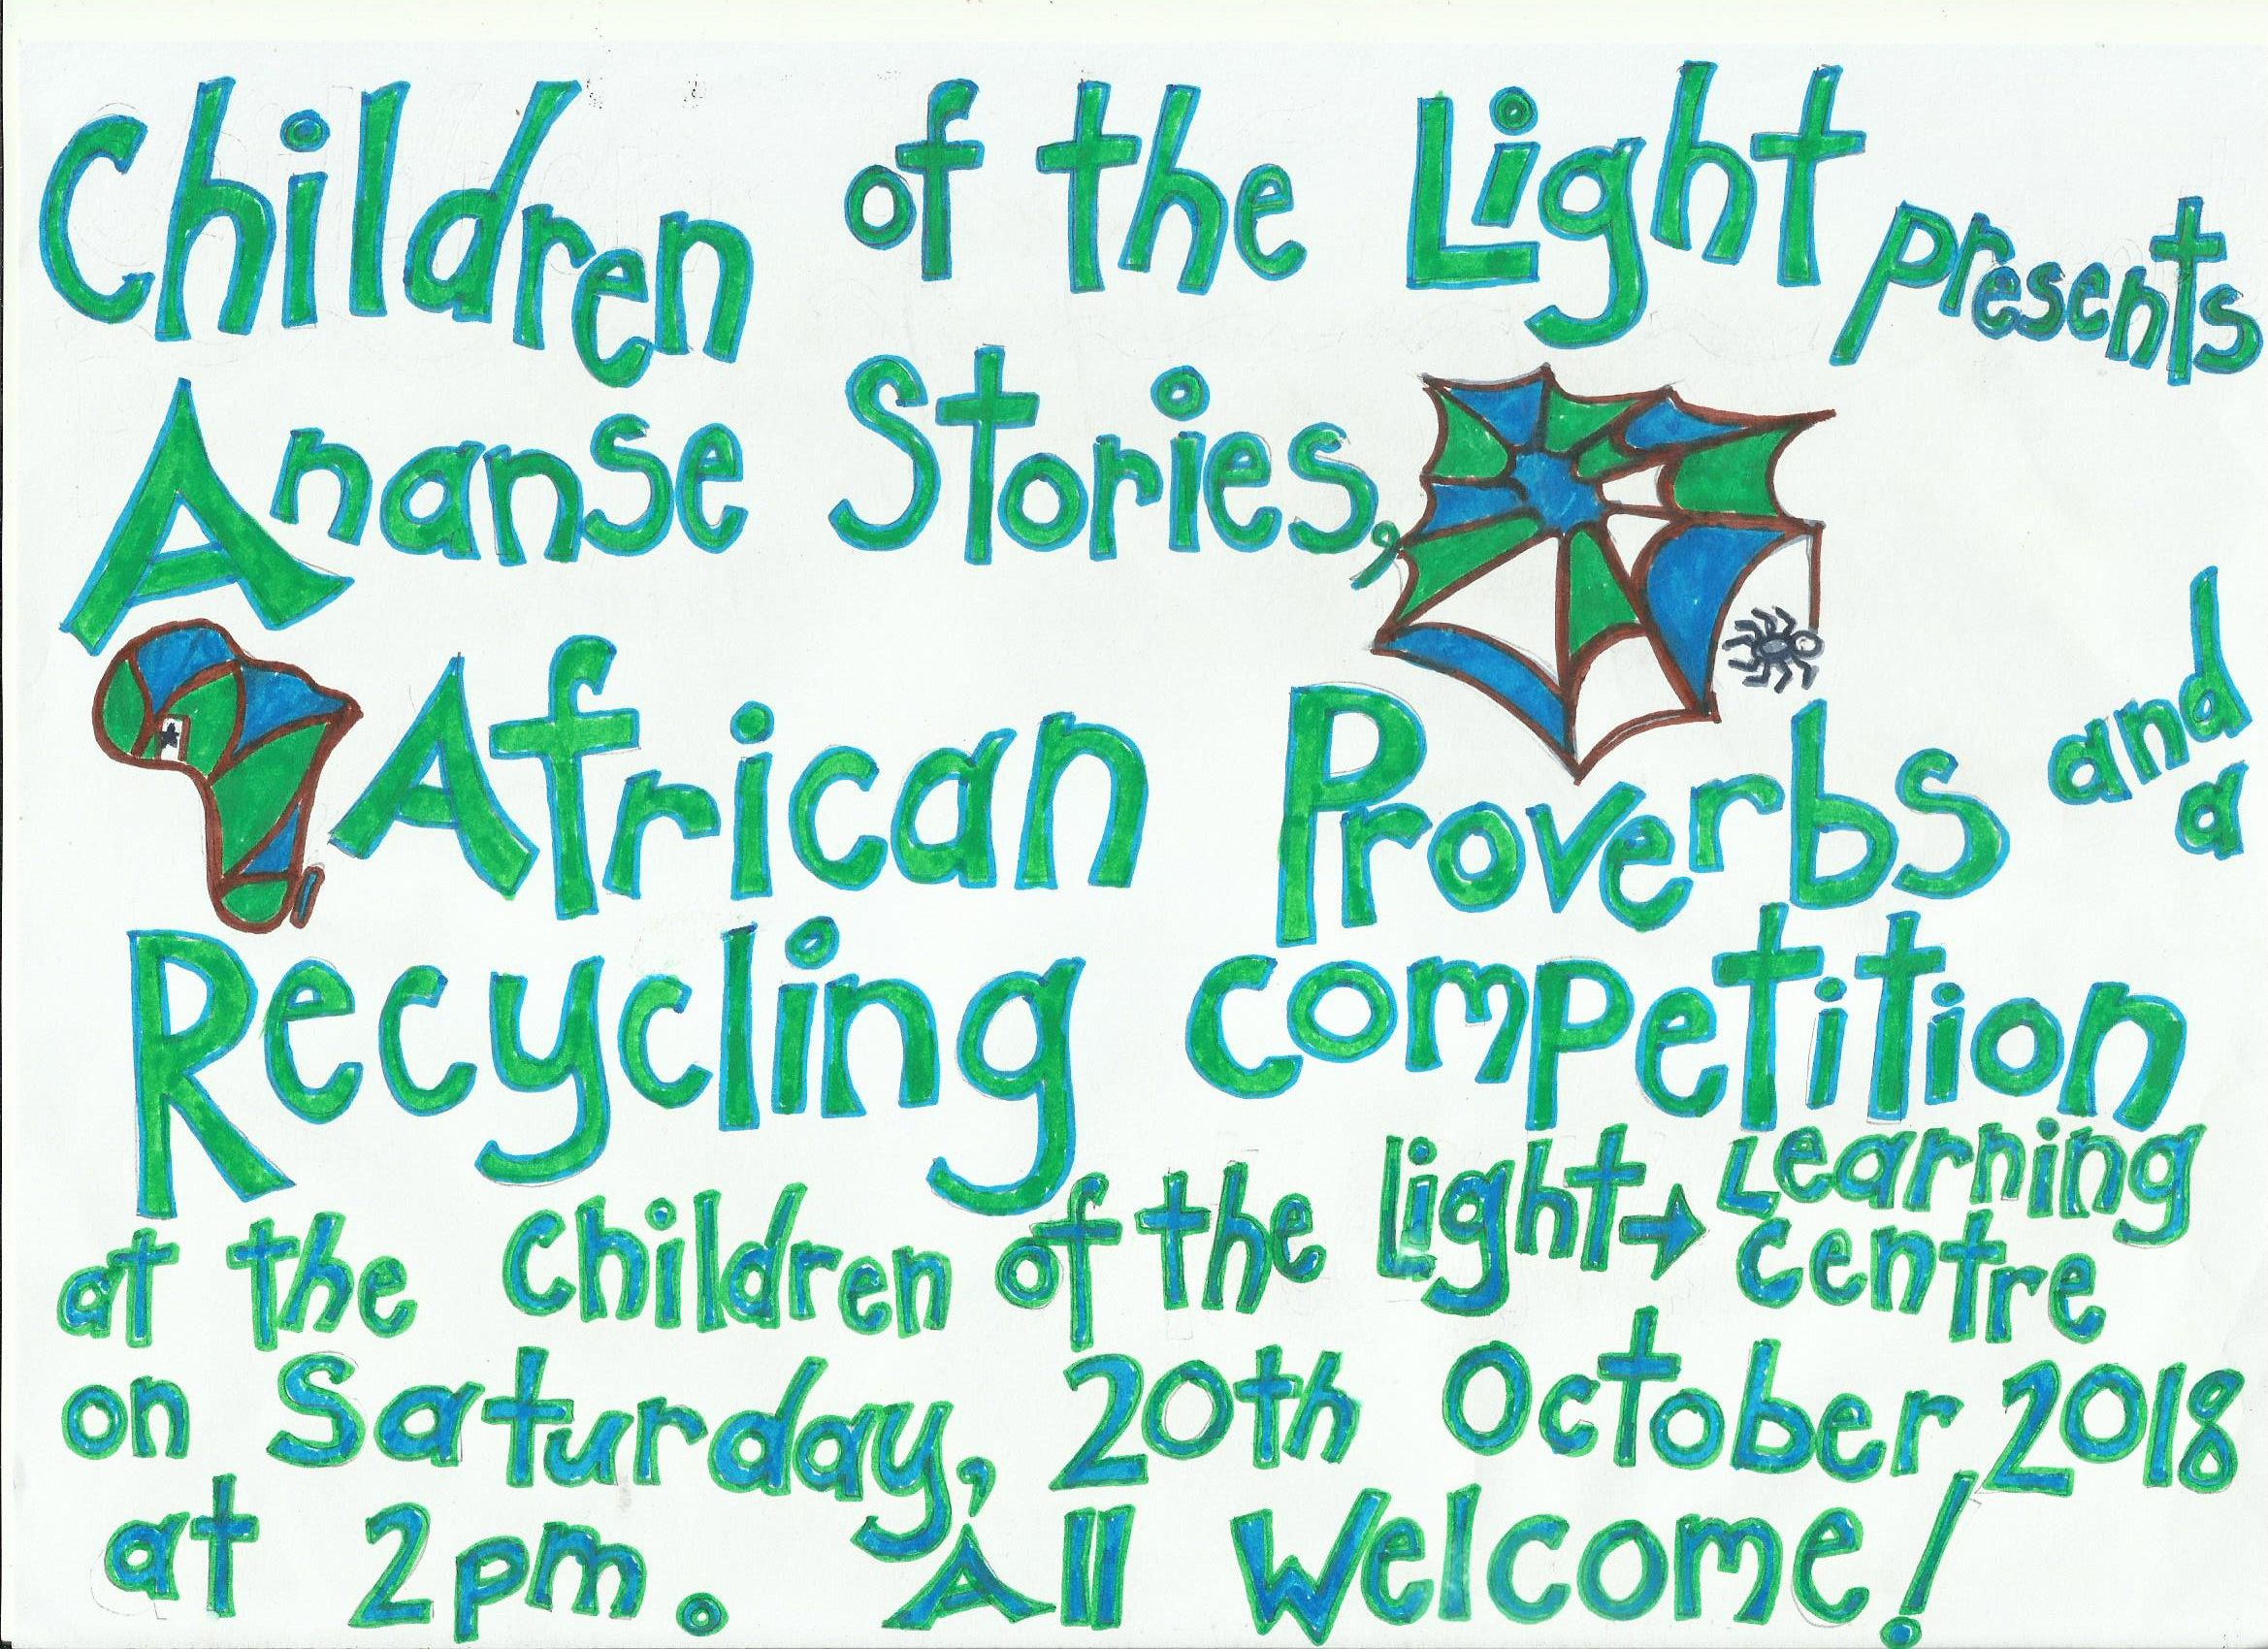 Ananse Stories, African Proverbs and a Recycling Competition - October 2018